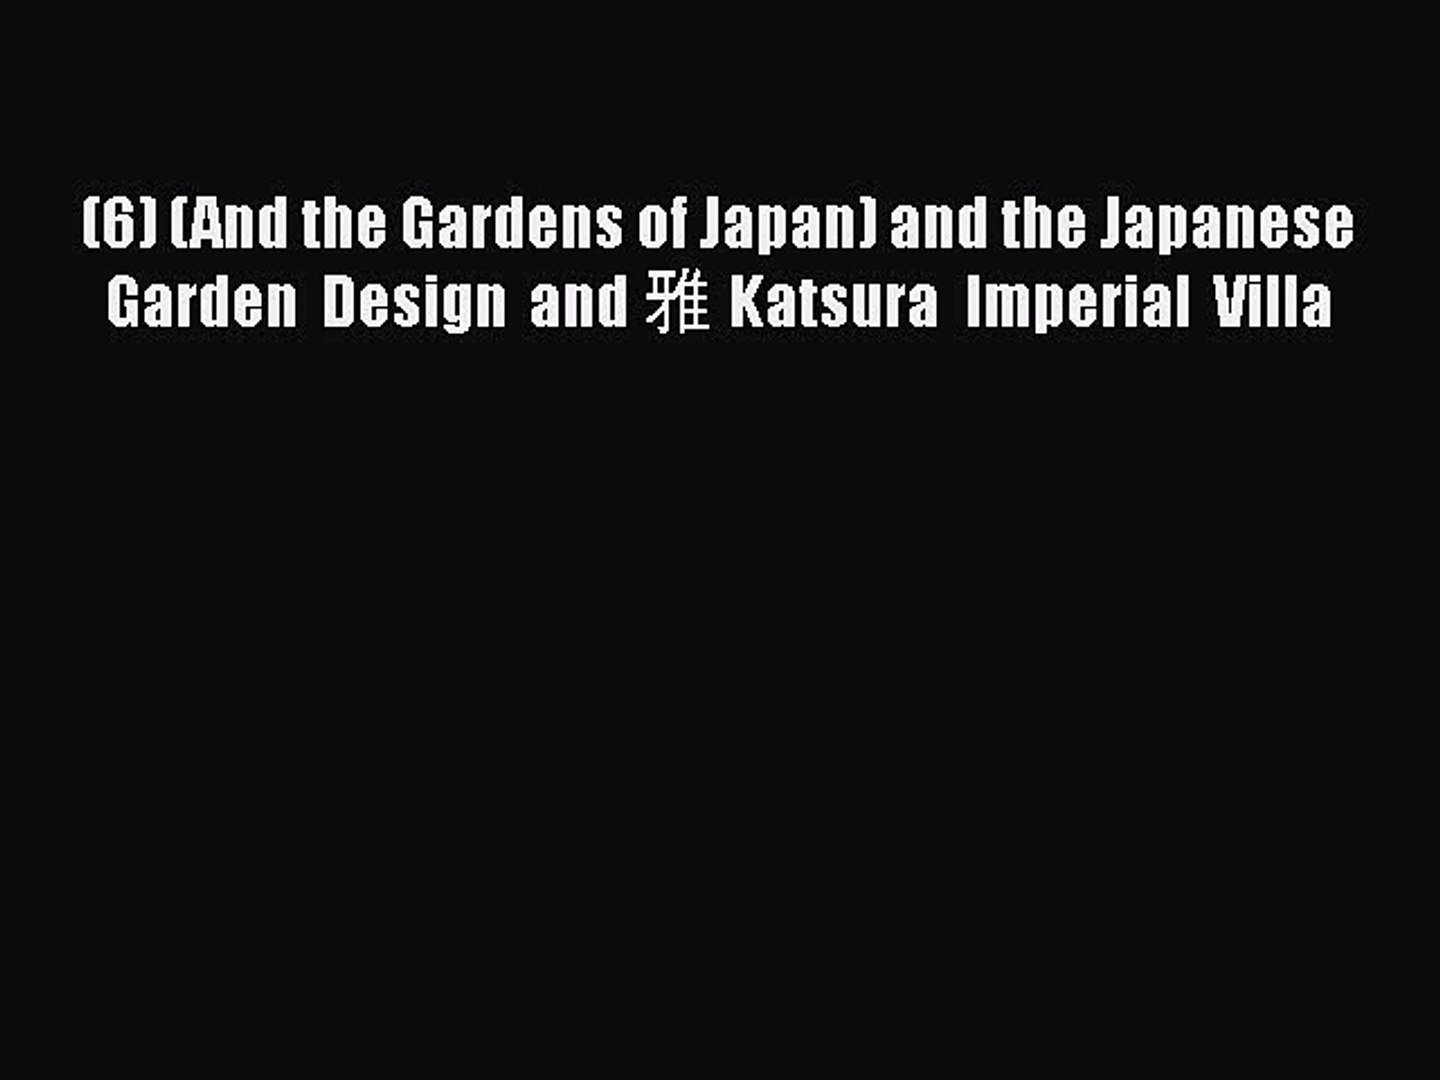 [PDF] (6) (And the Gardens of Japan) and the Japanese Garden Design and 雅 Katsura Imperial